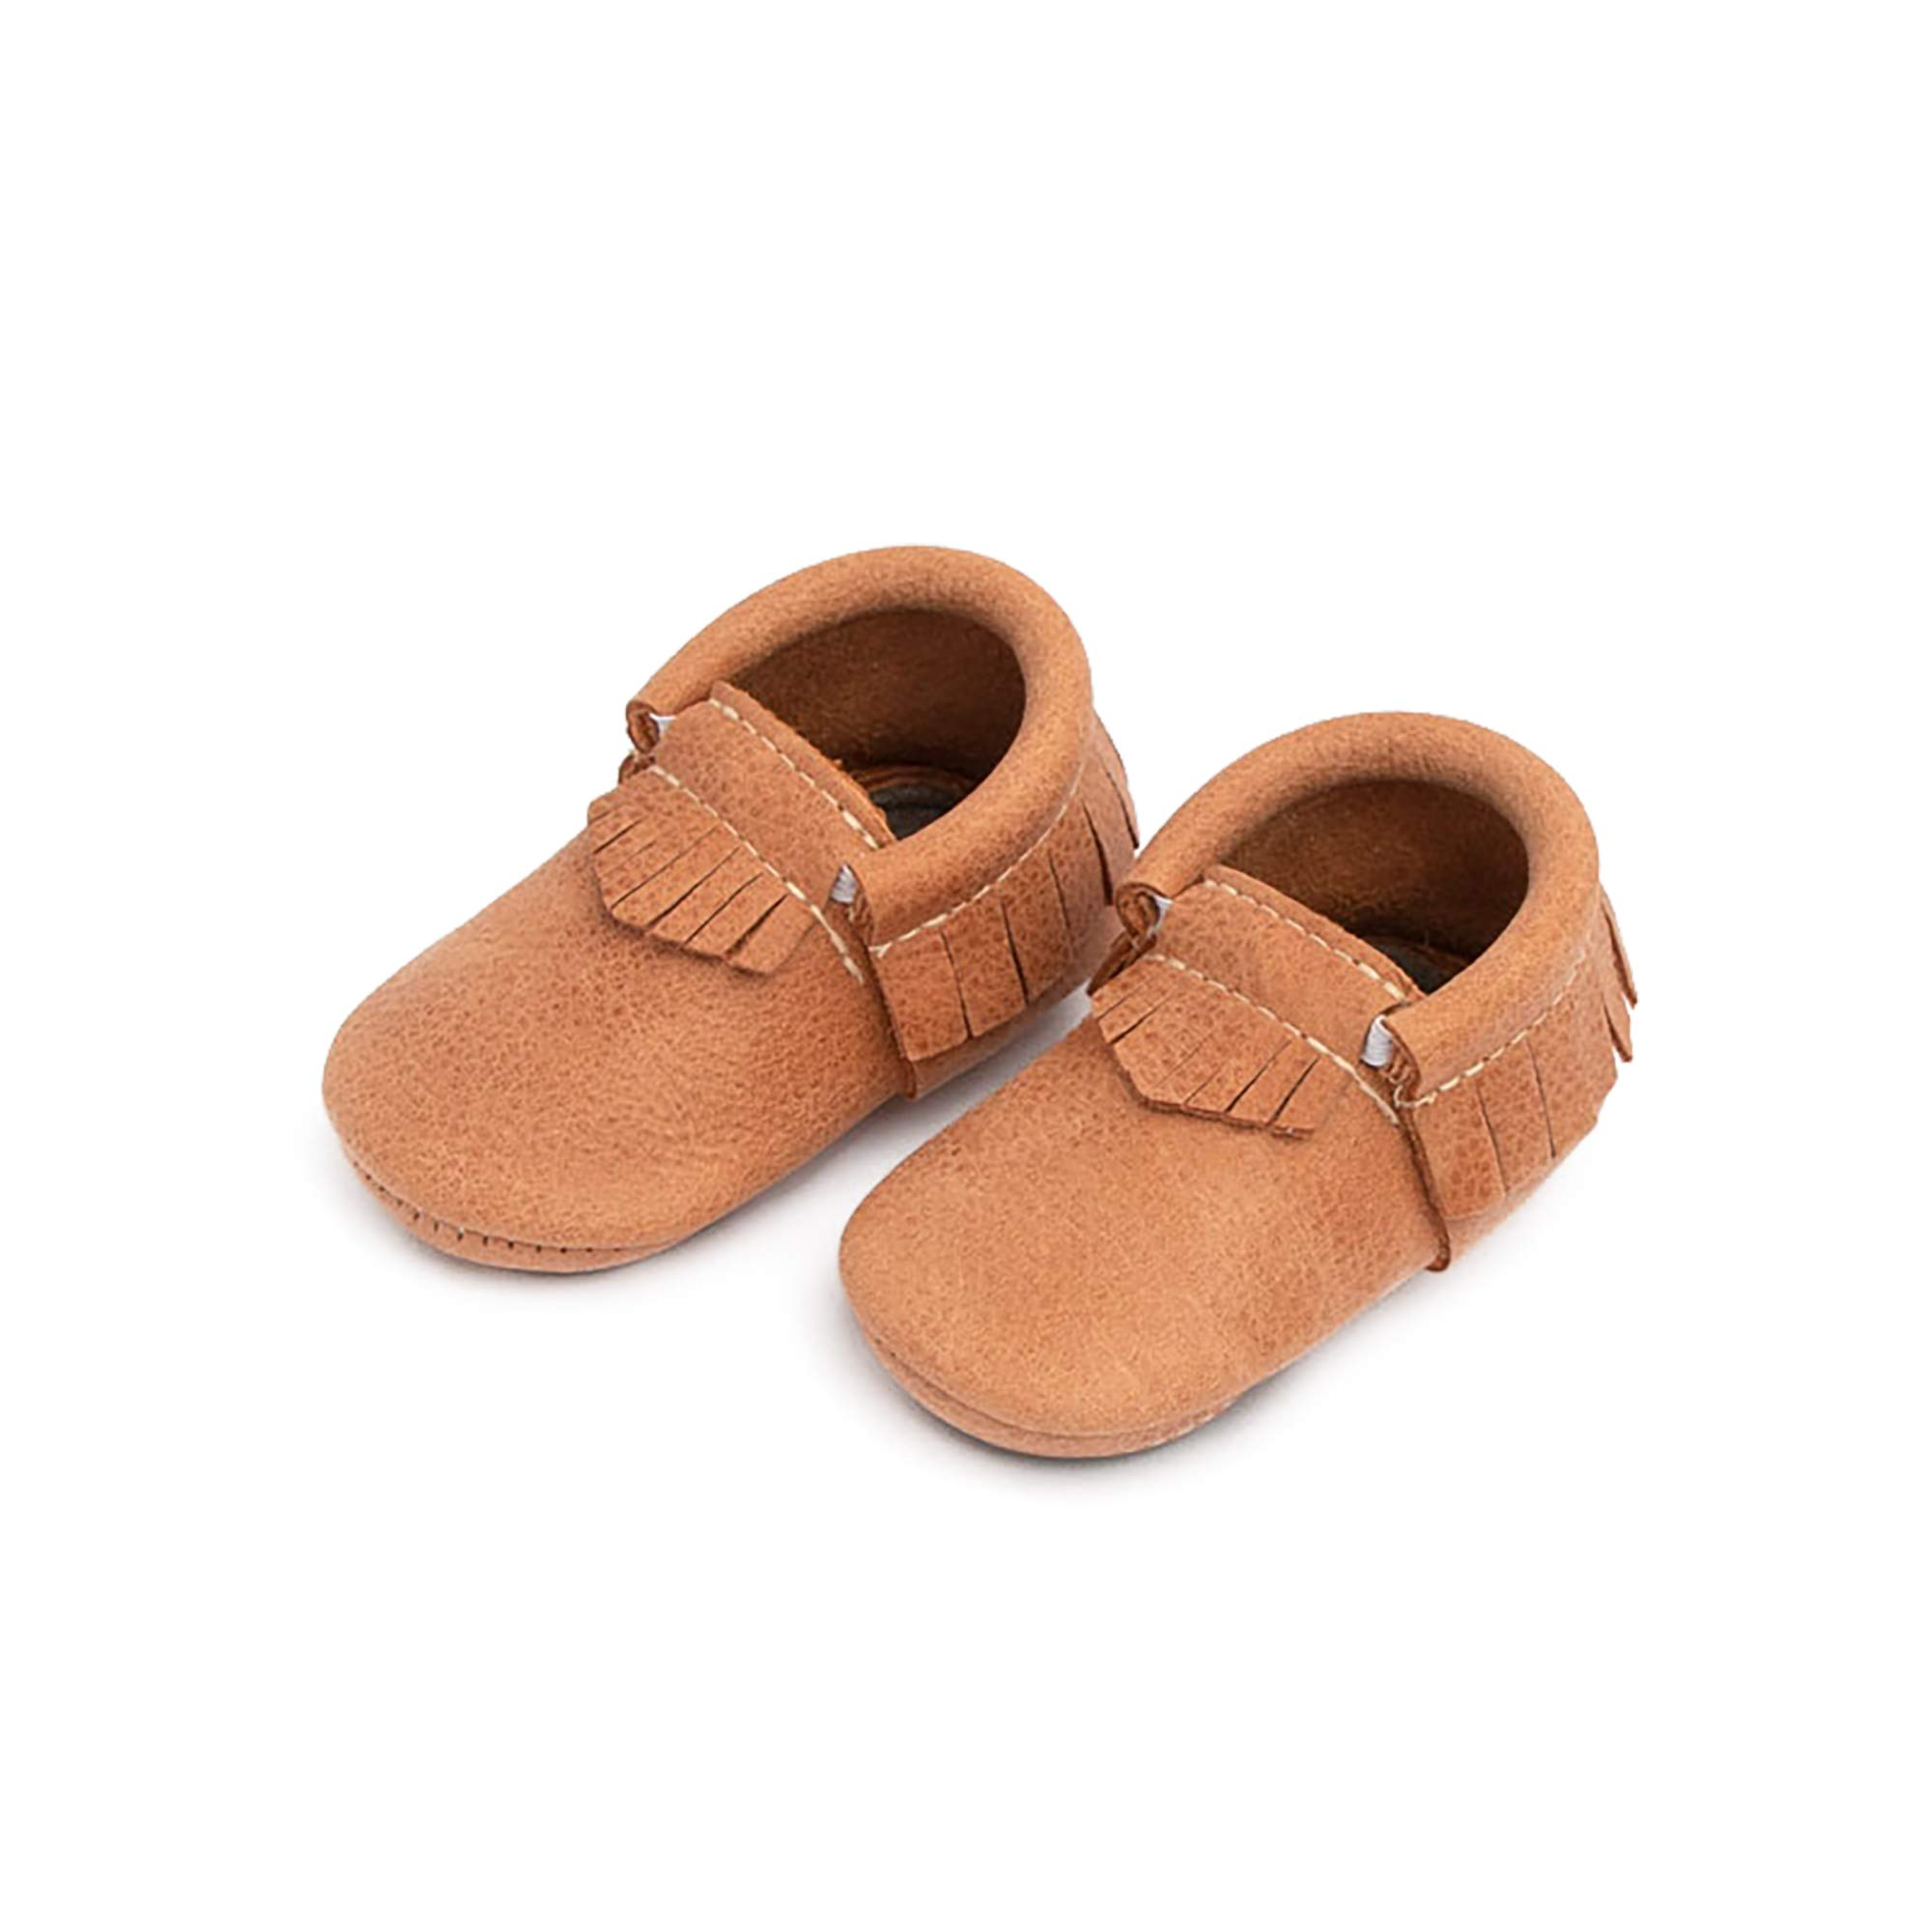 Freshly Picked - Rubber Mini Sole Leather Moccasins - Toddler Girl Boy Shoes - Size 3 Zion Tan by Freshly Picked